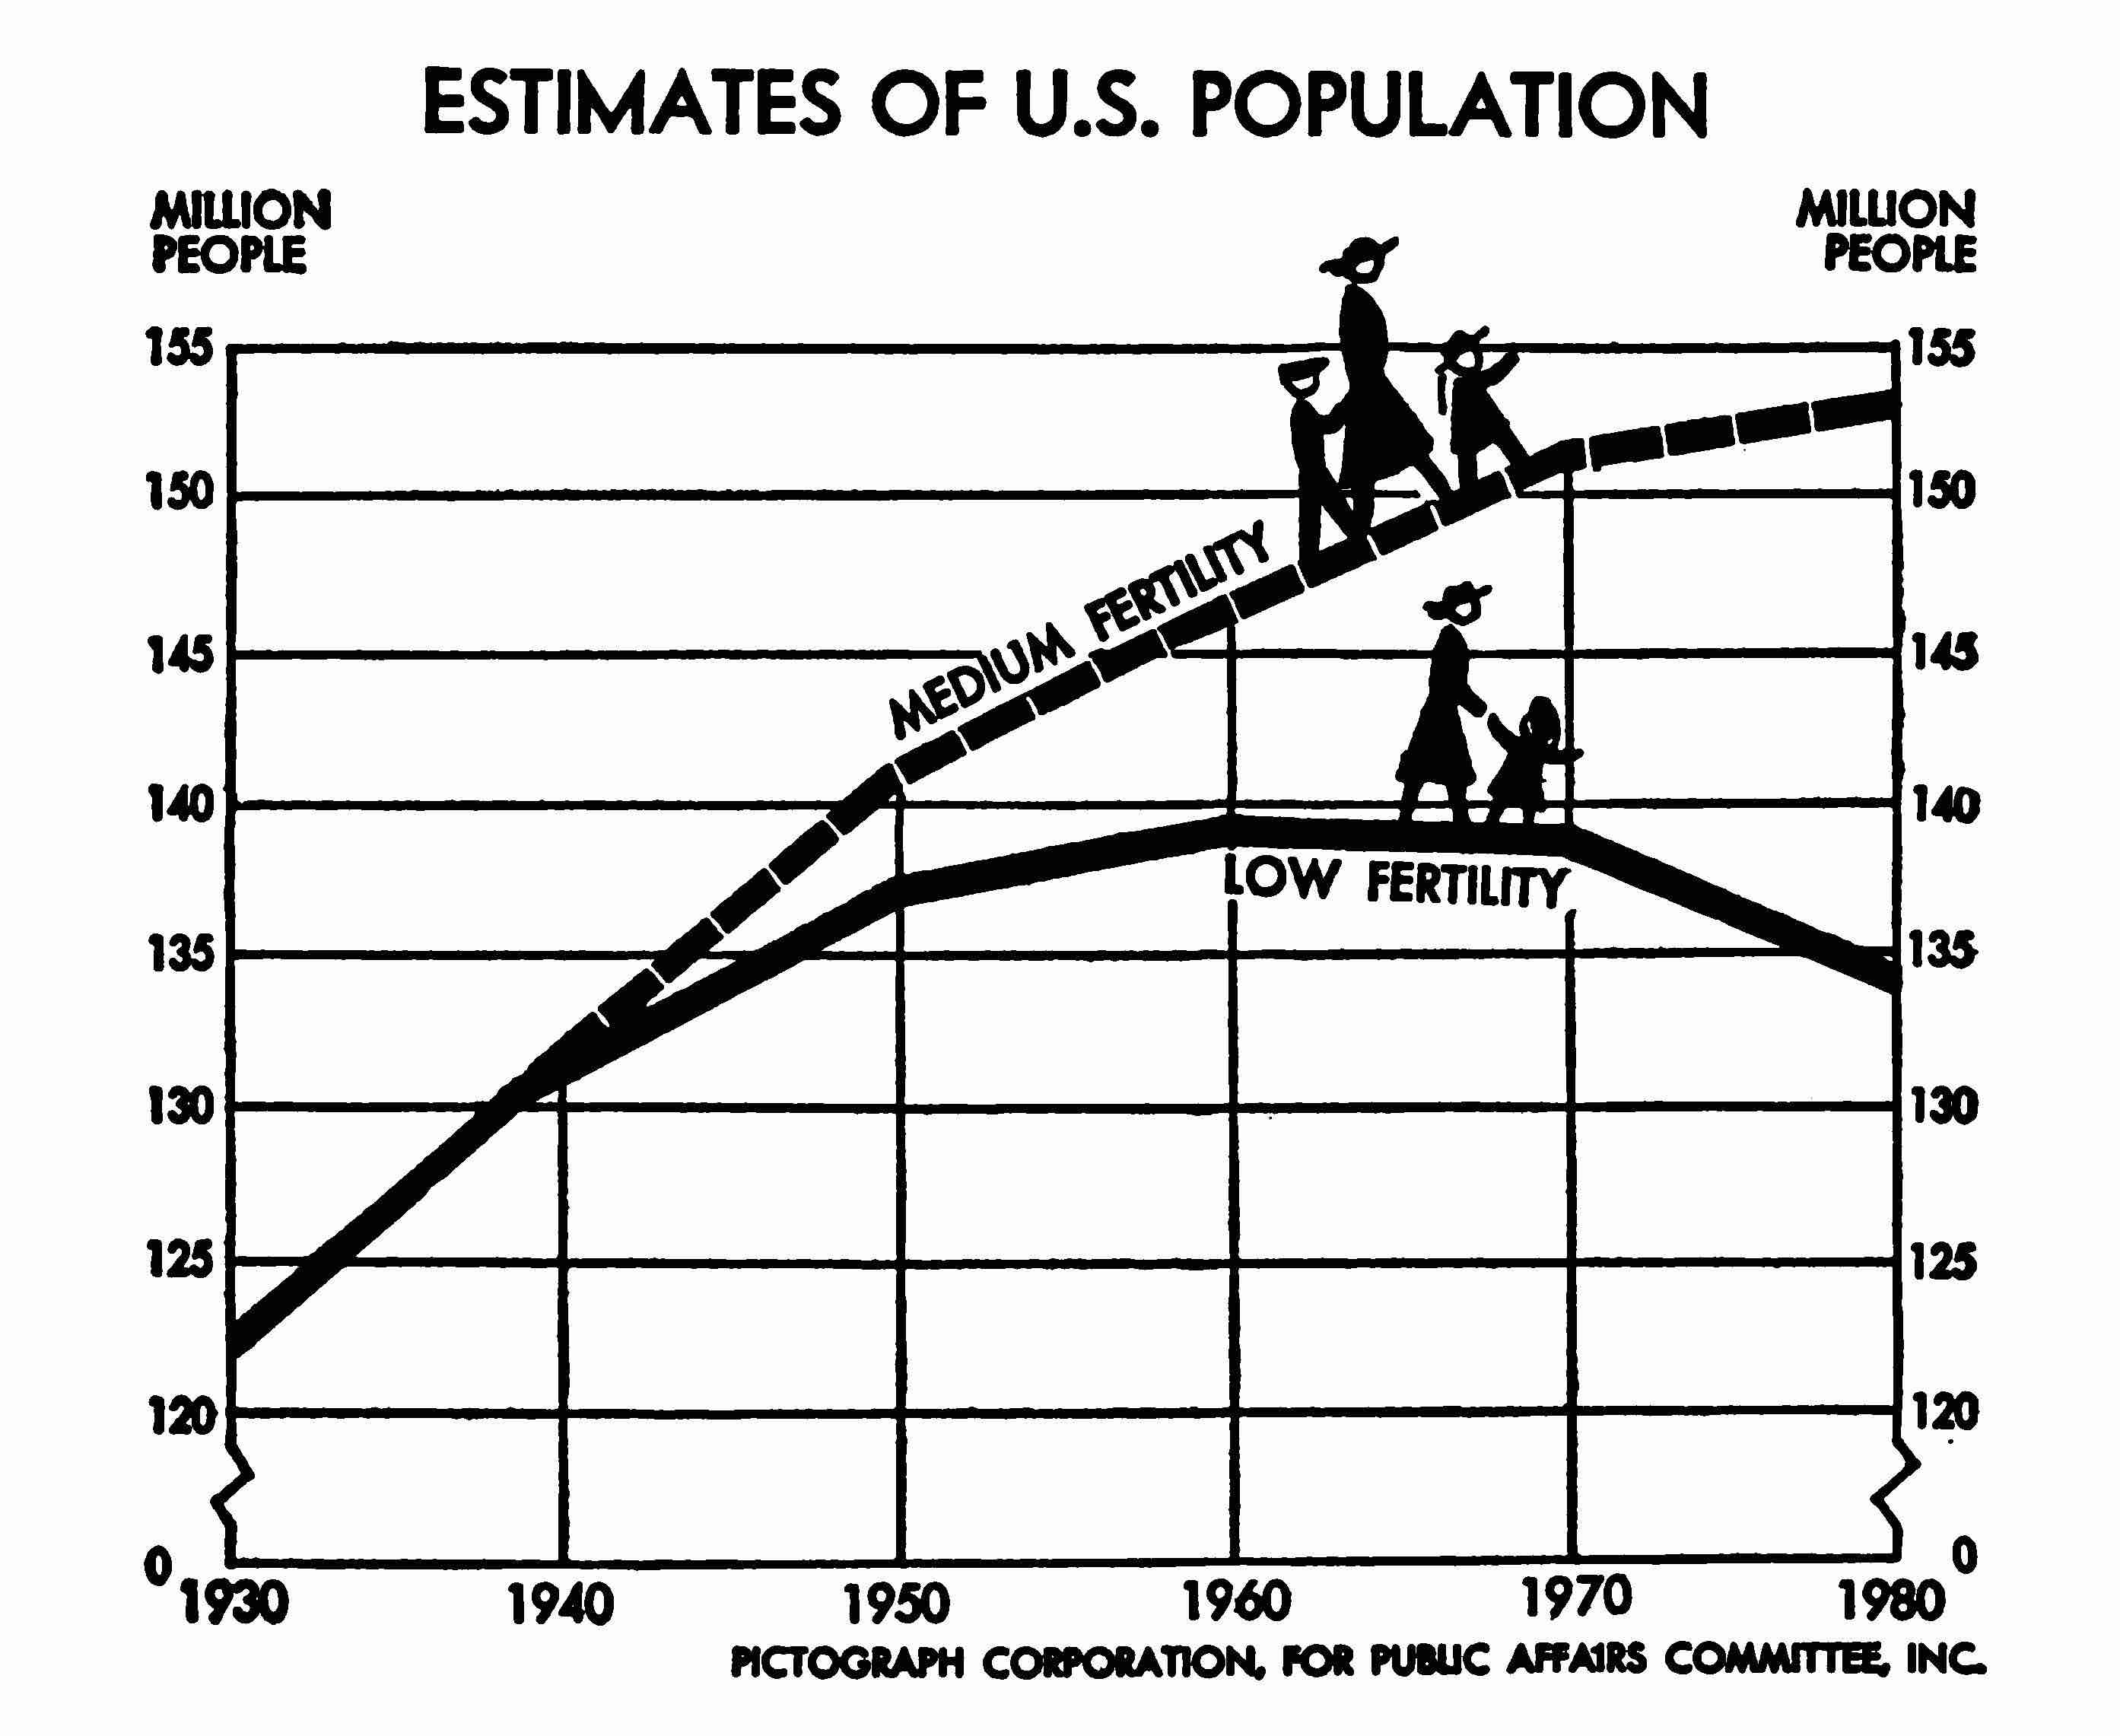 A pictograph with two estimates for U.S. population growth up to 1980, one medium and one low.